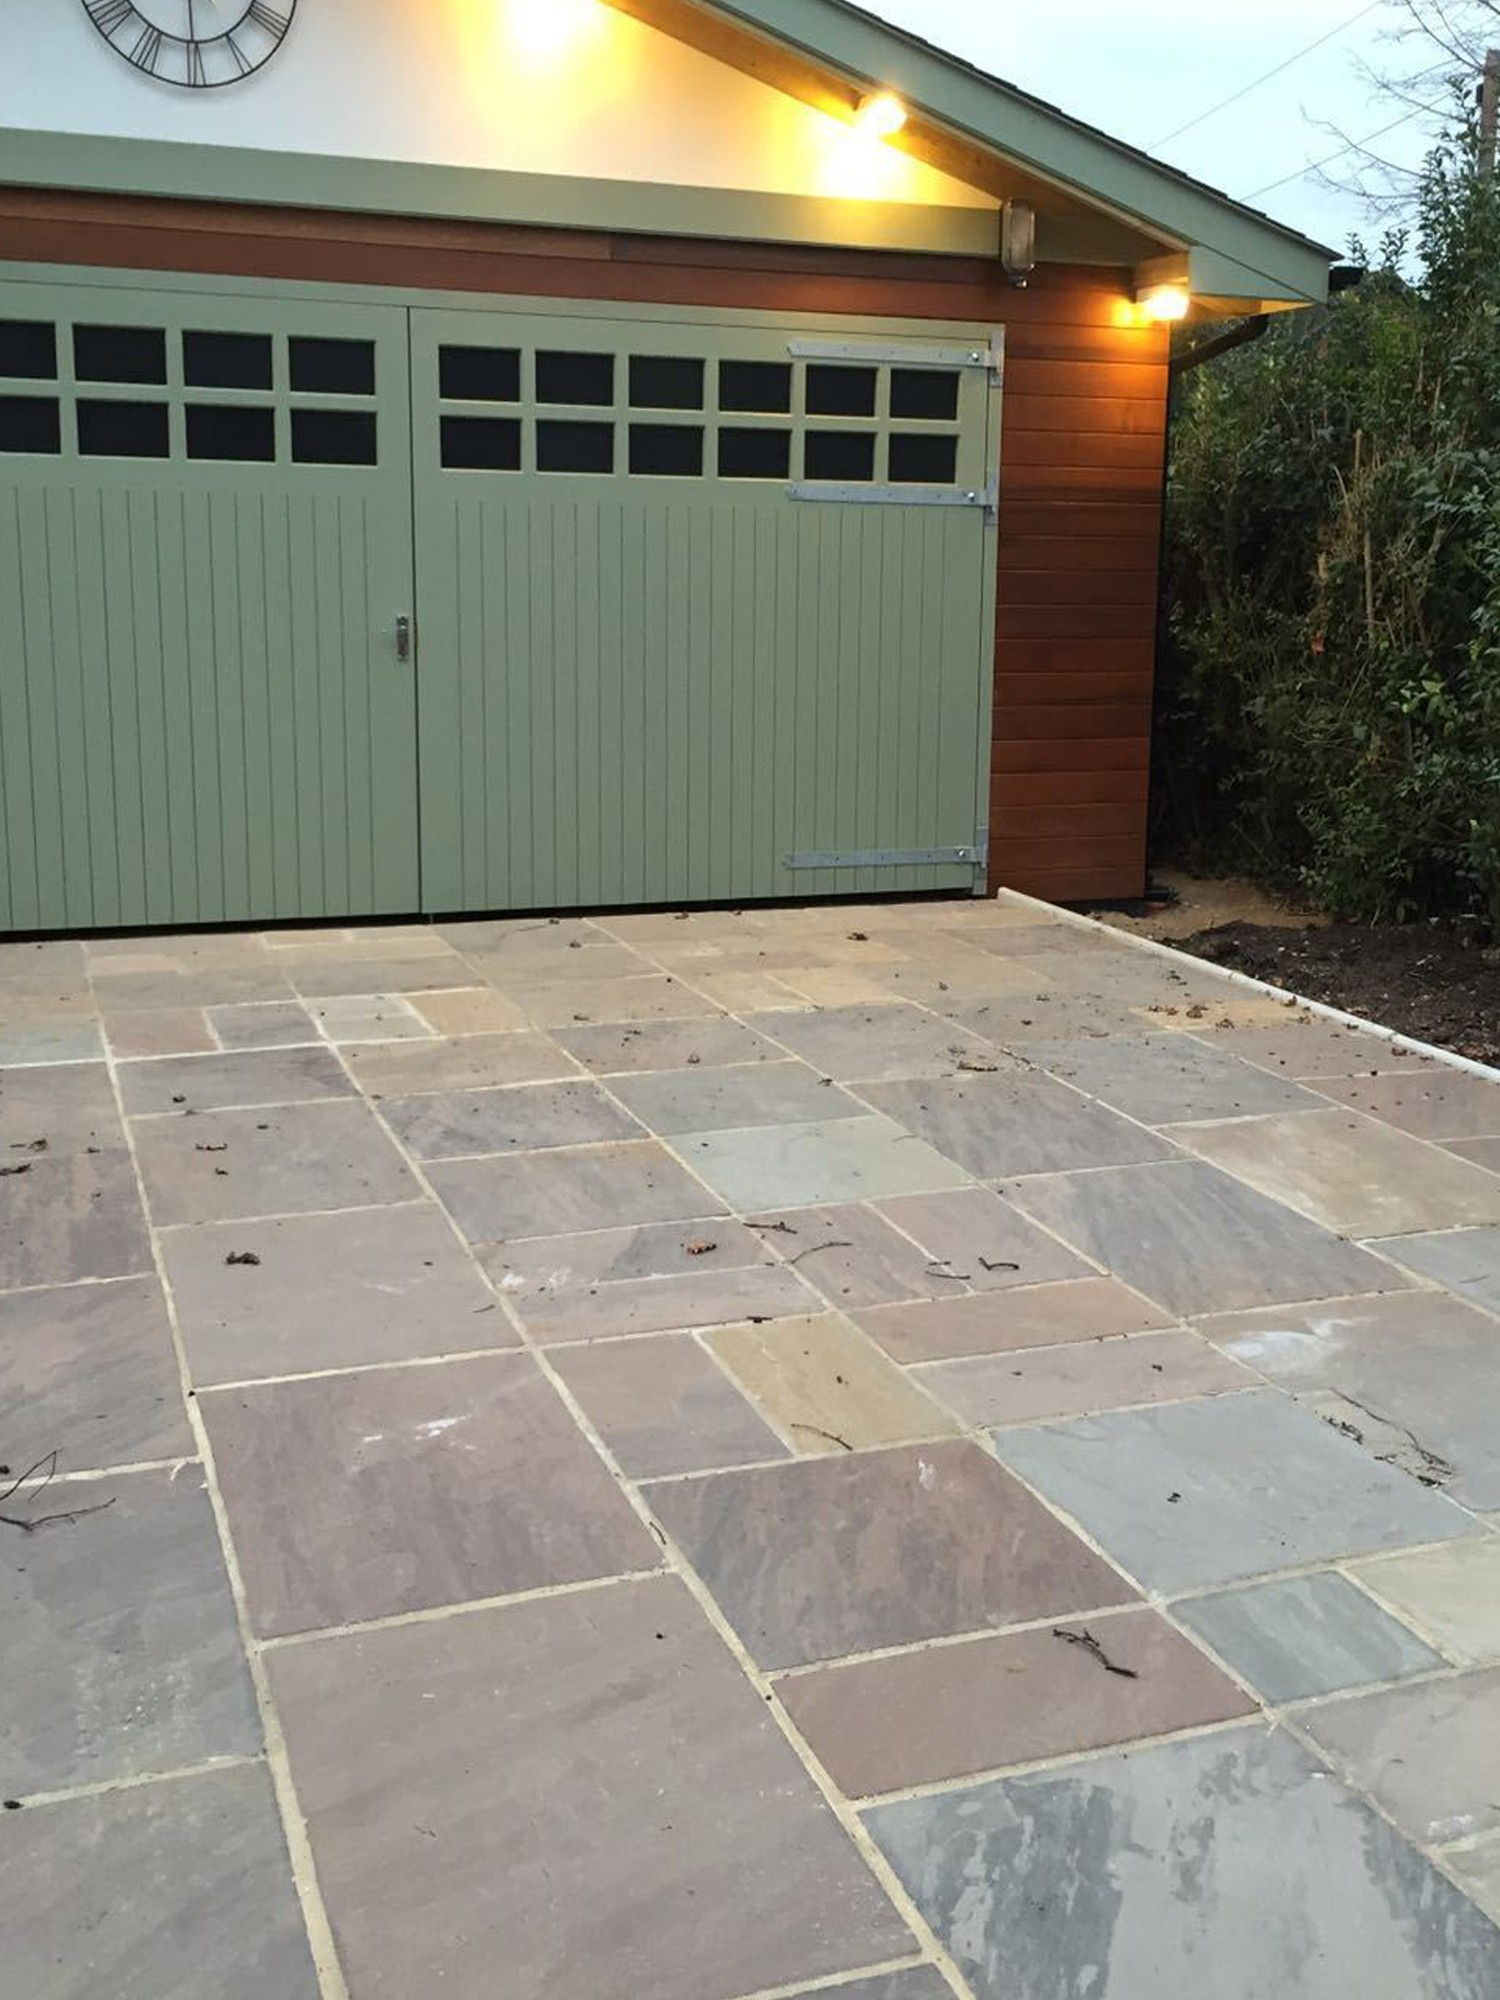 Autumn Brown Indian Sandstone Paving Slabs